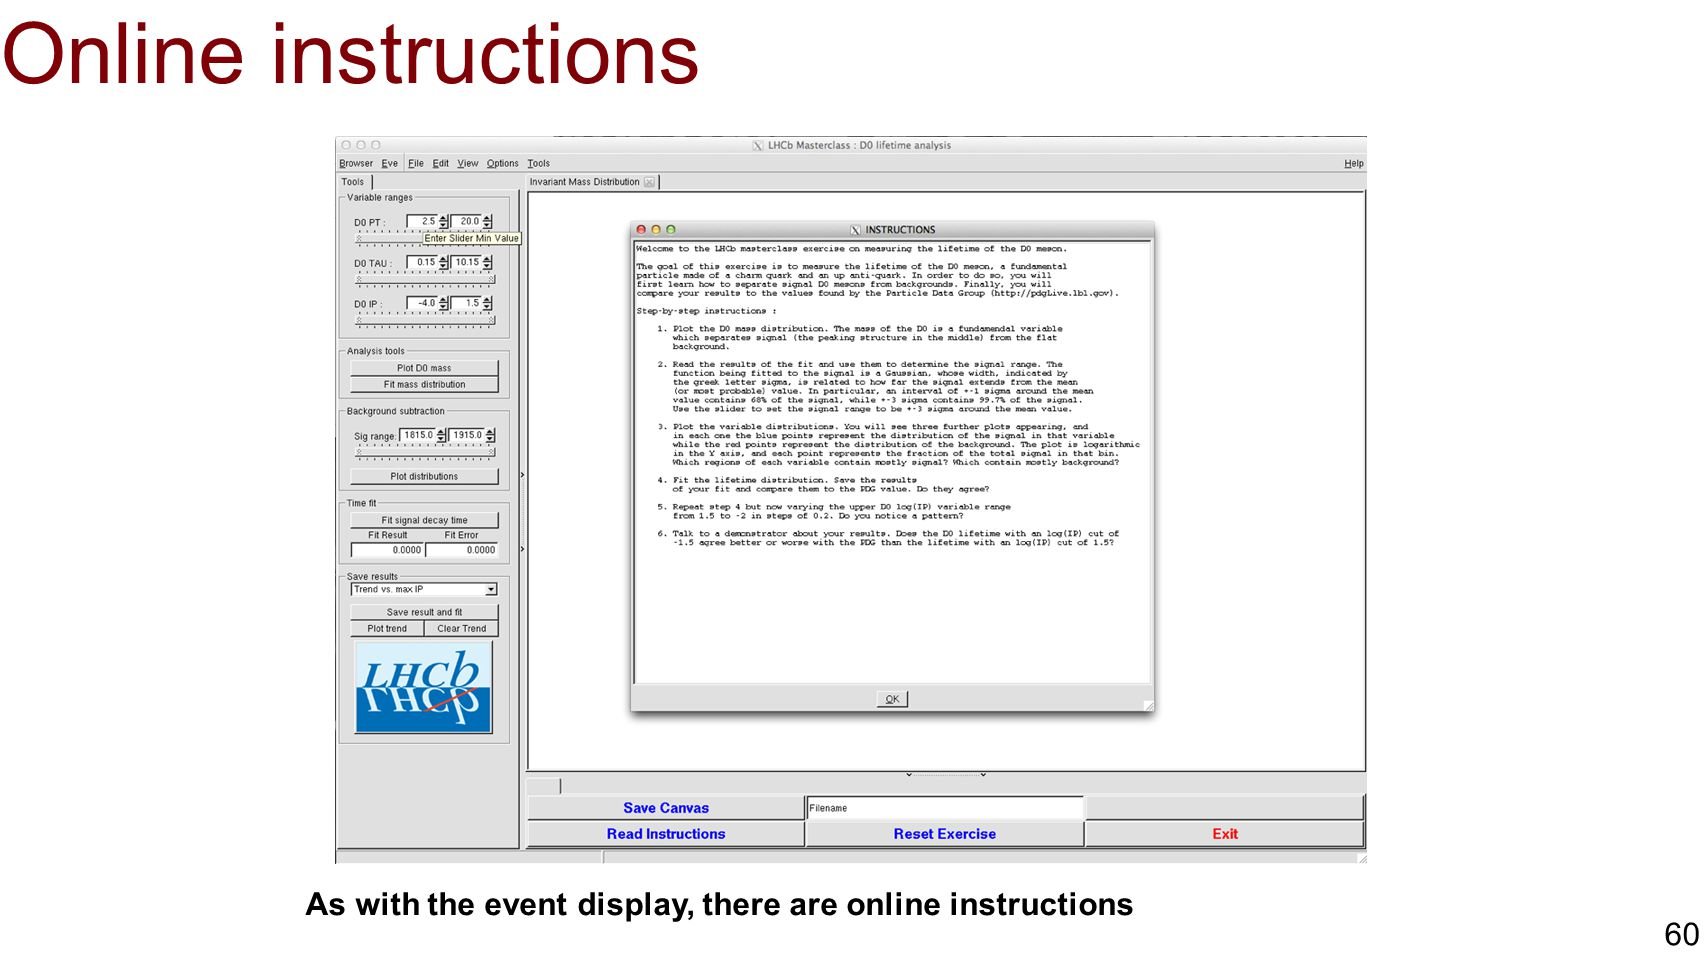 Online instructions As with the event display, there are online instructions